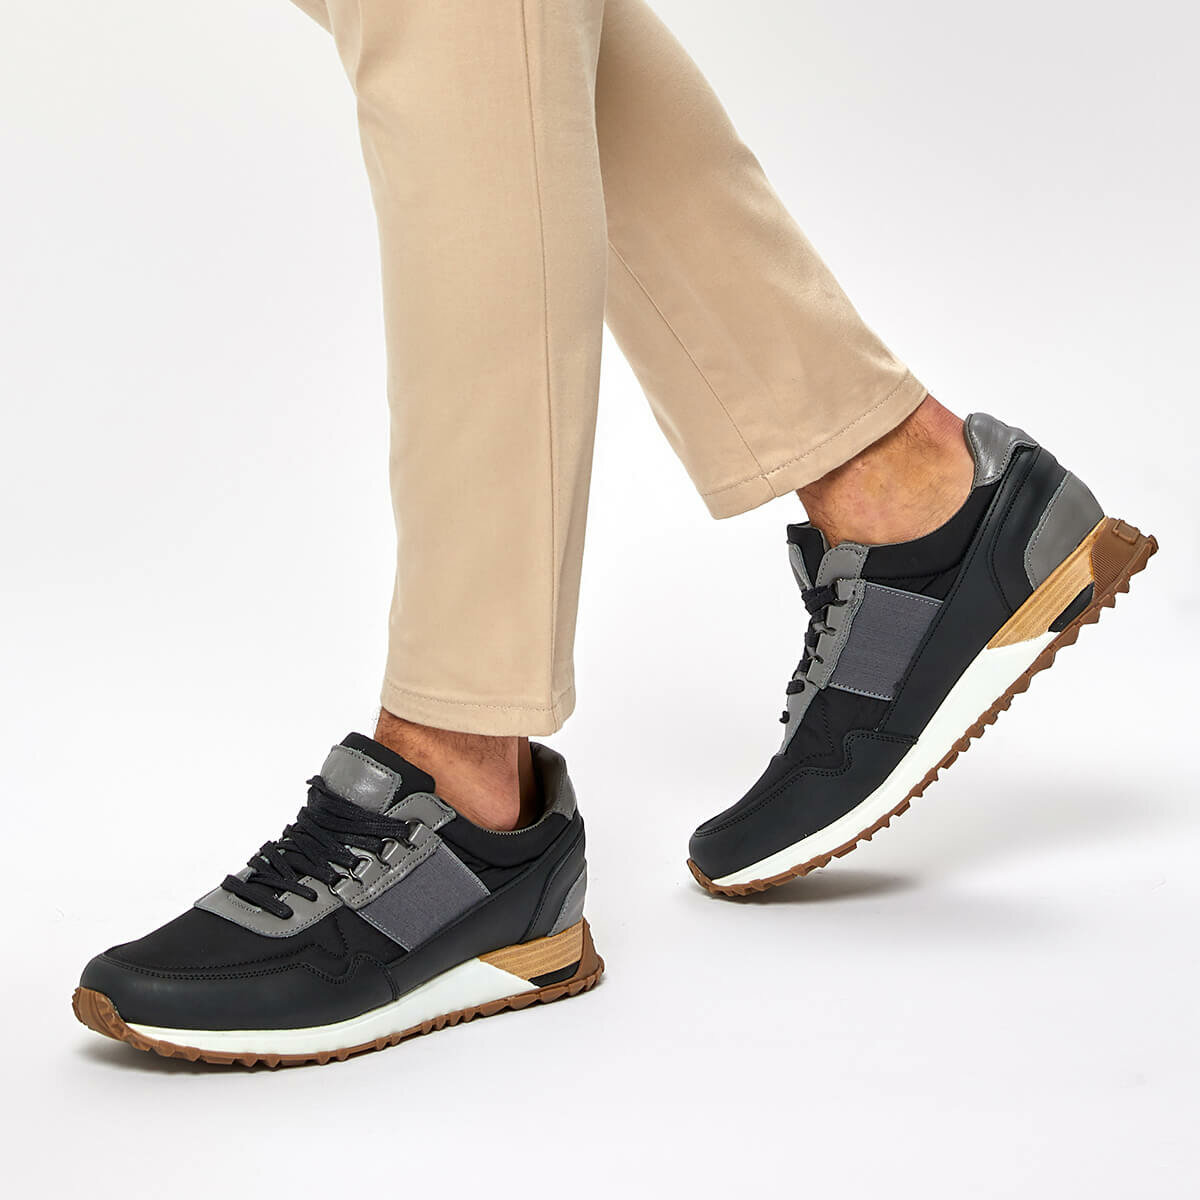 FLO FARGO Black Men 'S Sneaker Shoes LUMBERJACK